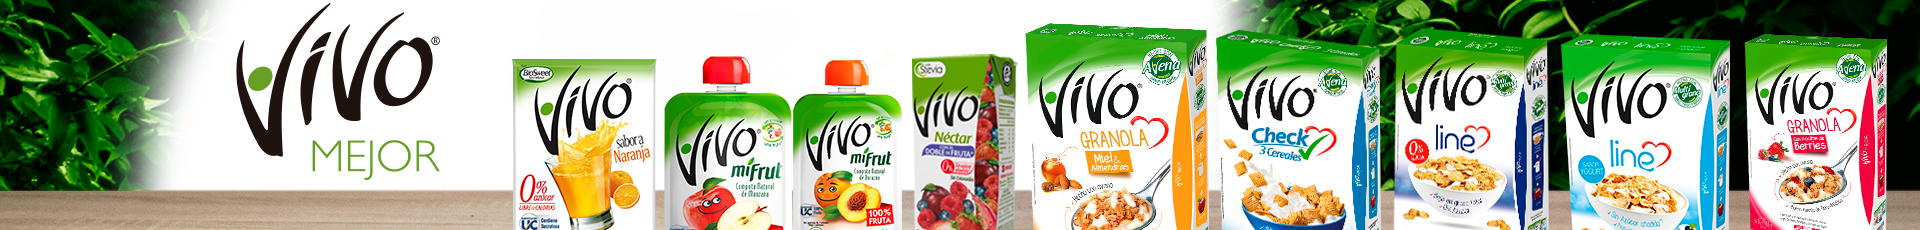 /vivo?utm_source=WEB&utm_medium=banner%20catalogo%20superior&utm_campaign=vivo